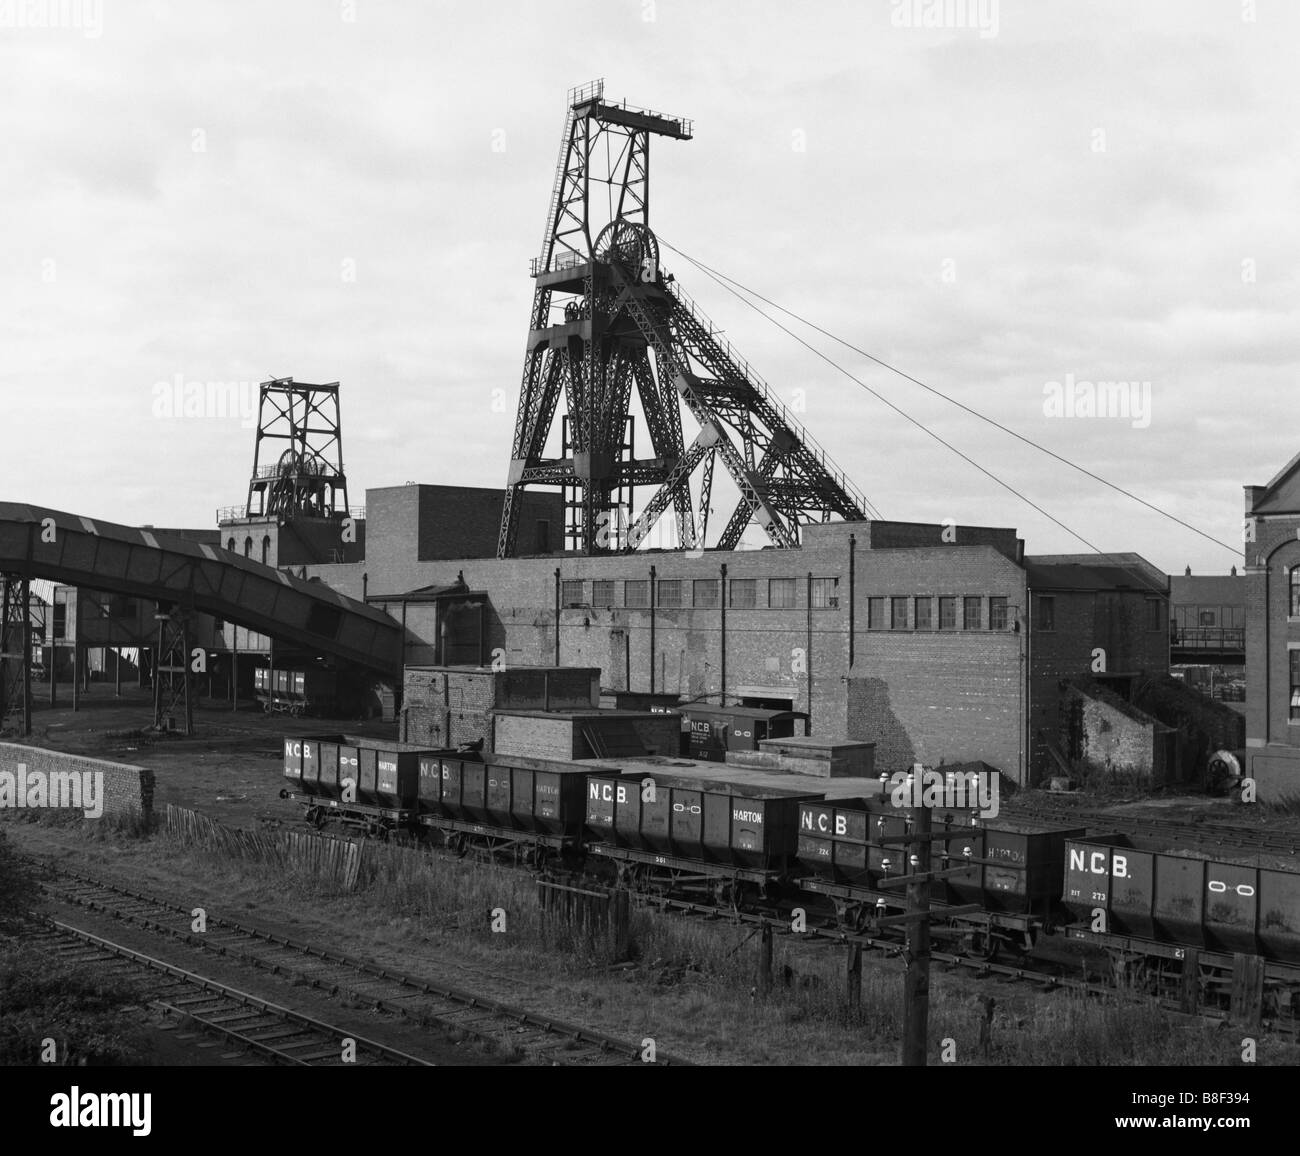 the-pithead-of-boldon-colliery-coal-mine-with-ncb-coal-trucks-in-the-B8F394.jpg